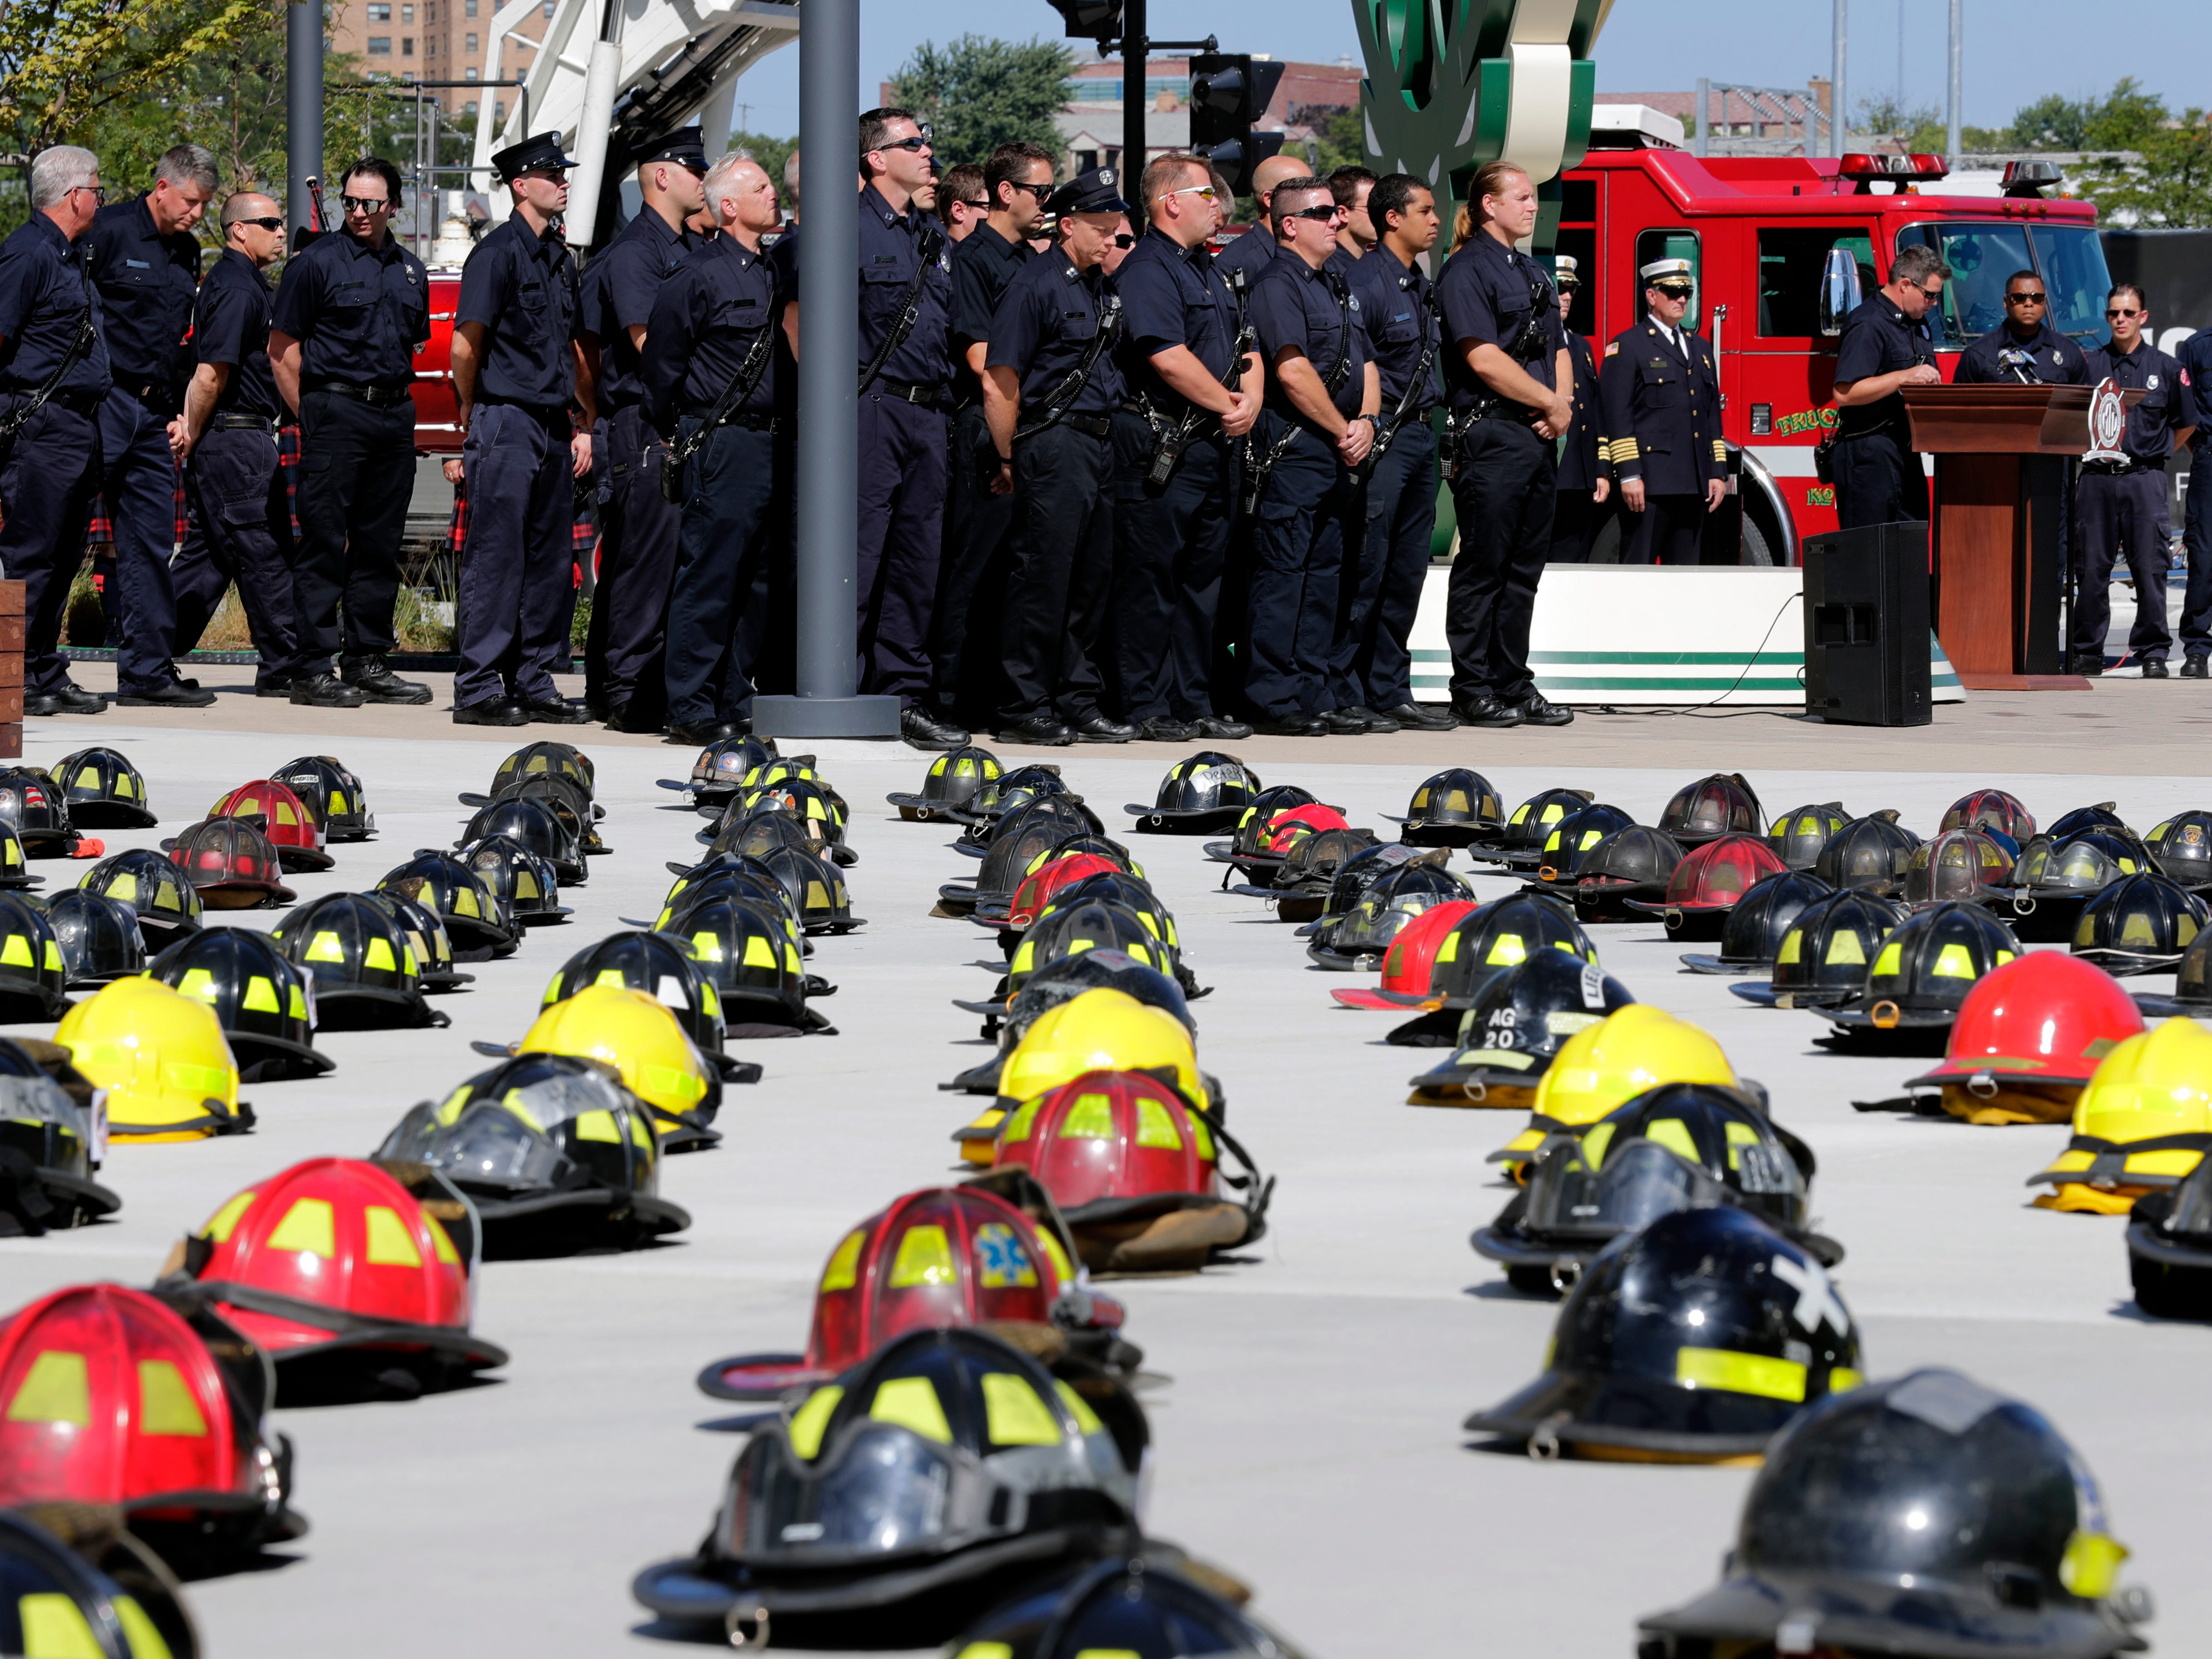 The Milwaukee Fire Department pays tribute to those who lost their lives during the 9-11 attacks.